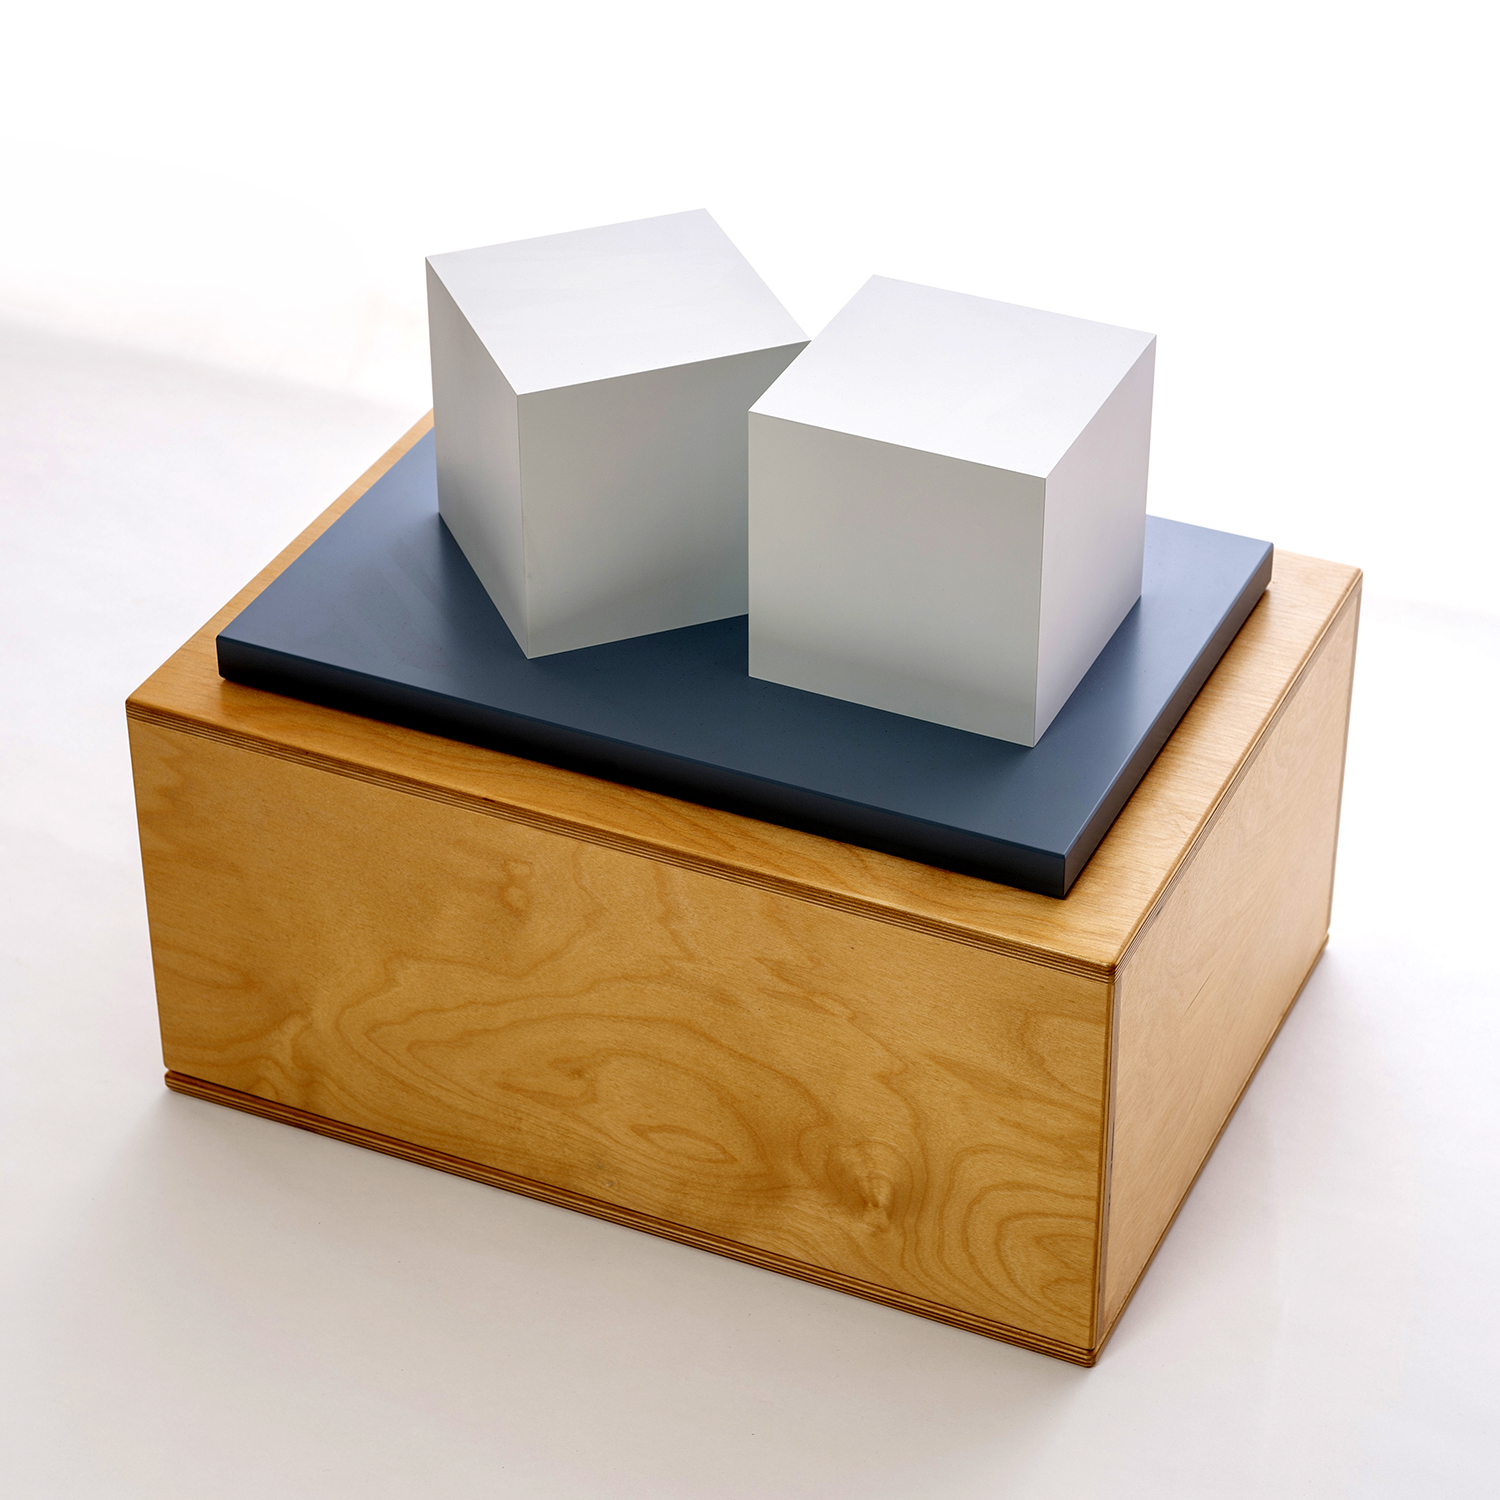 Two Cubes, 2005